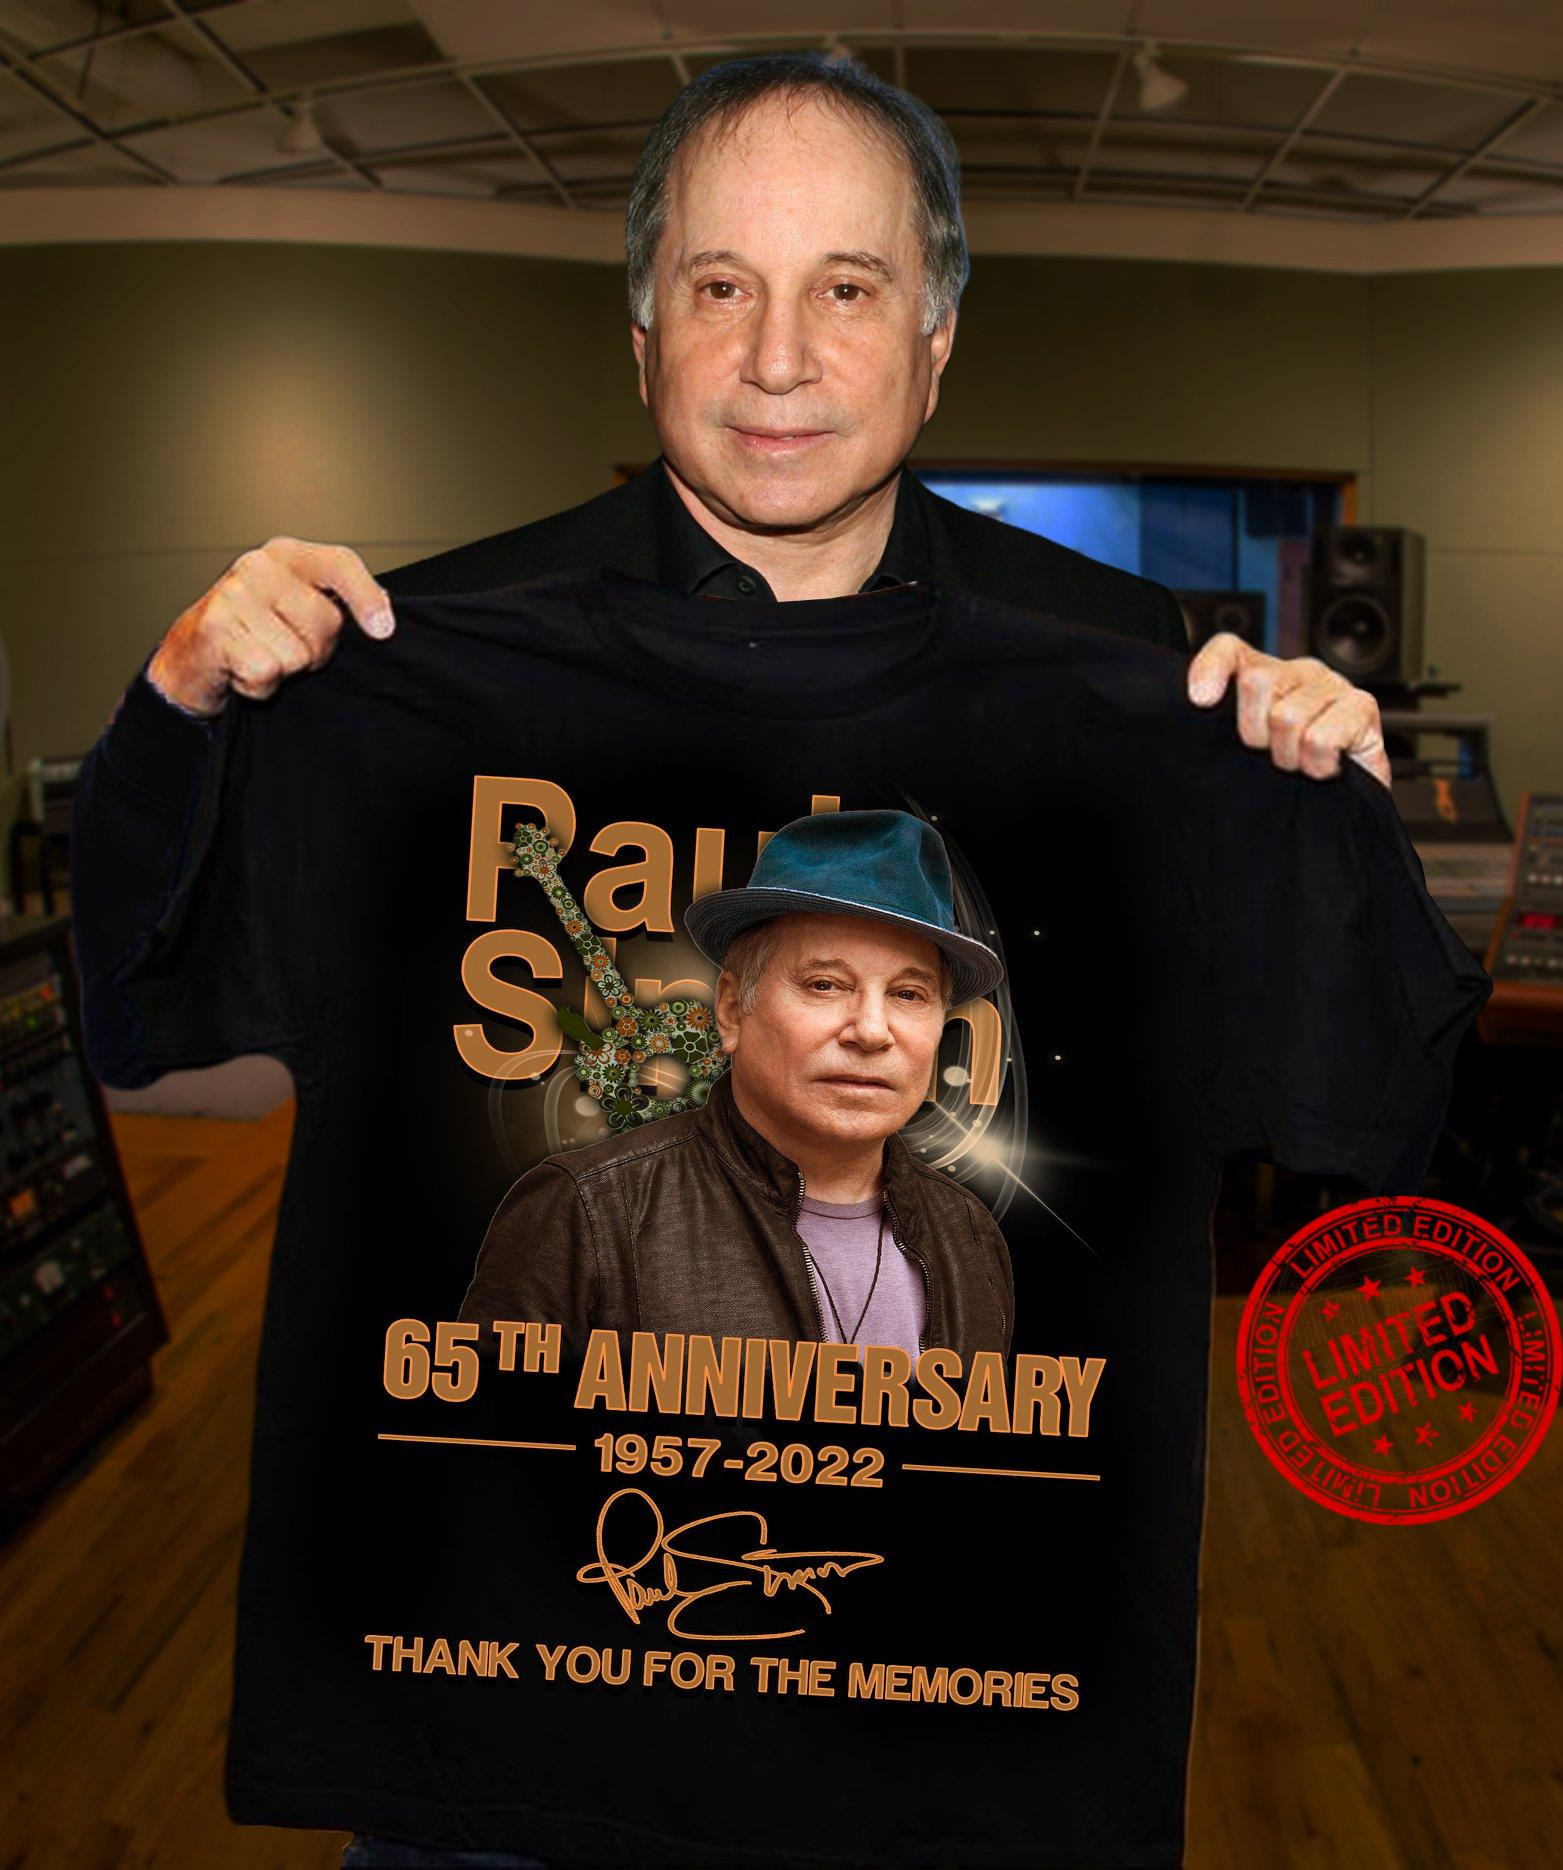 65th Anniversary 1957 2022 Thank You For The Memories Shirt